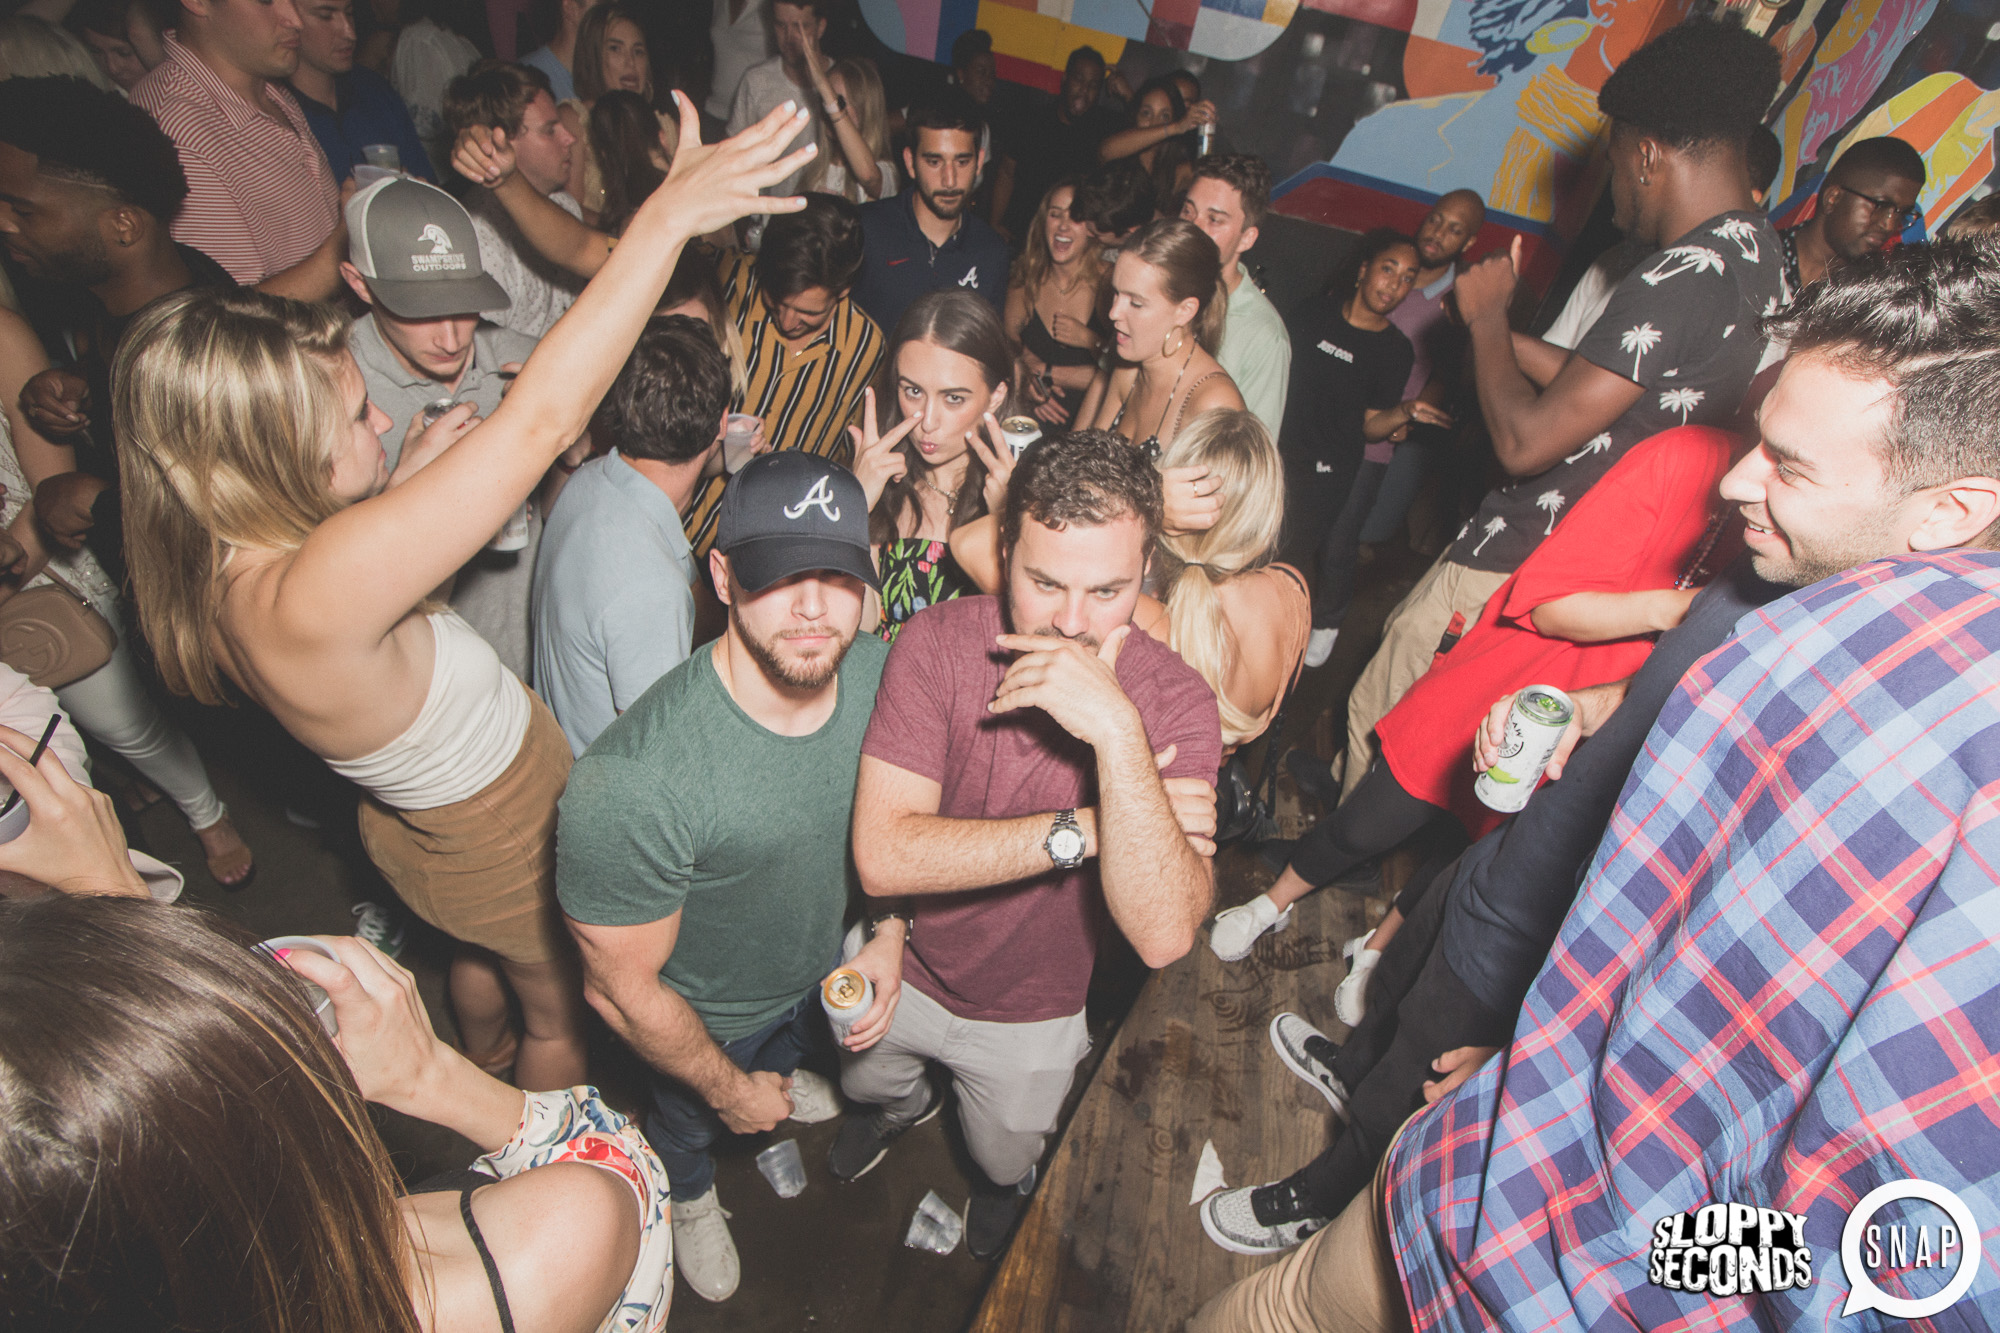 Sloppy Seconds 7.13.19 Oh Snap Kid Colin Boddy Atlanta-89.jpg